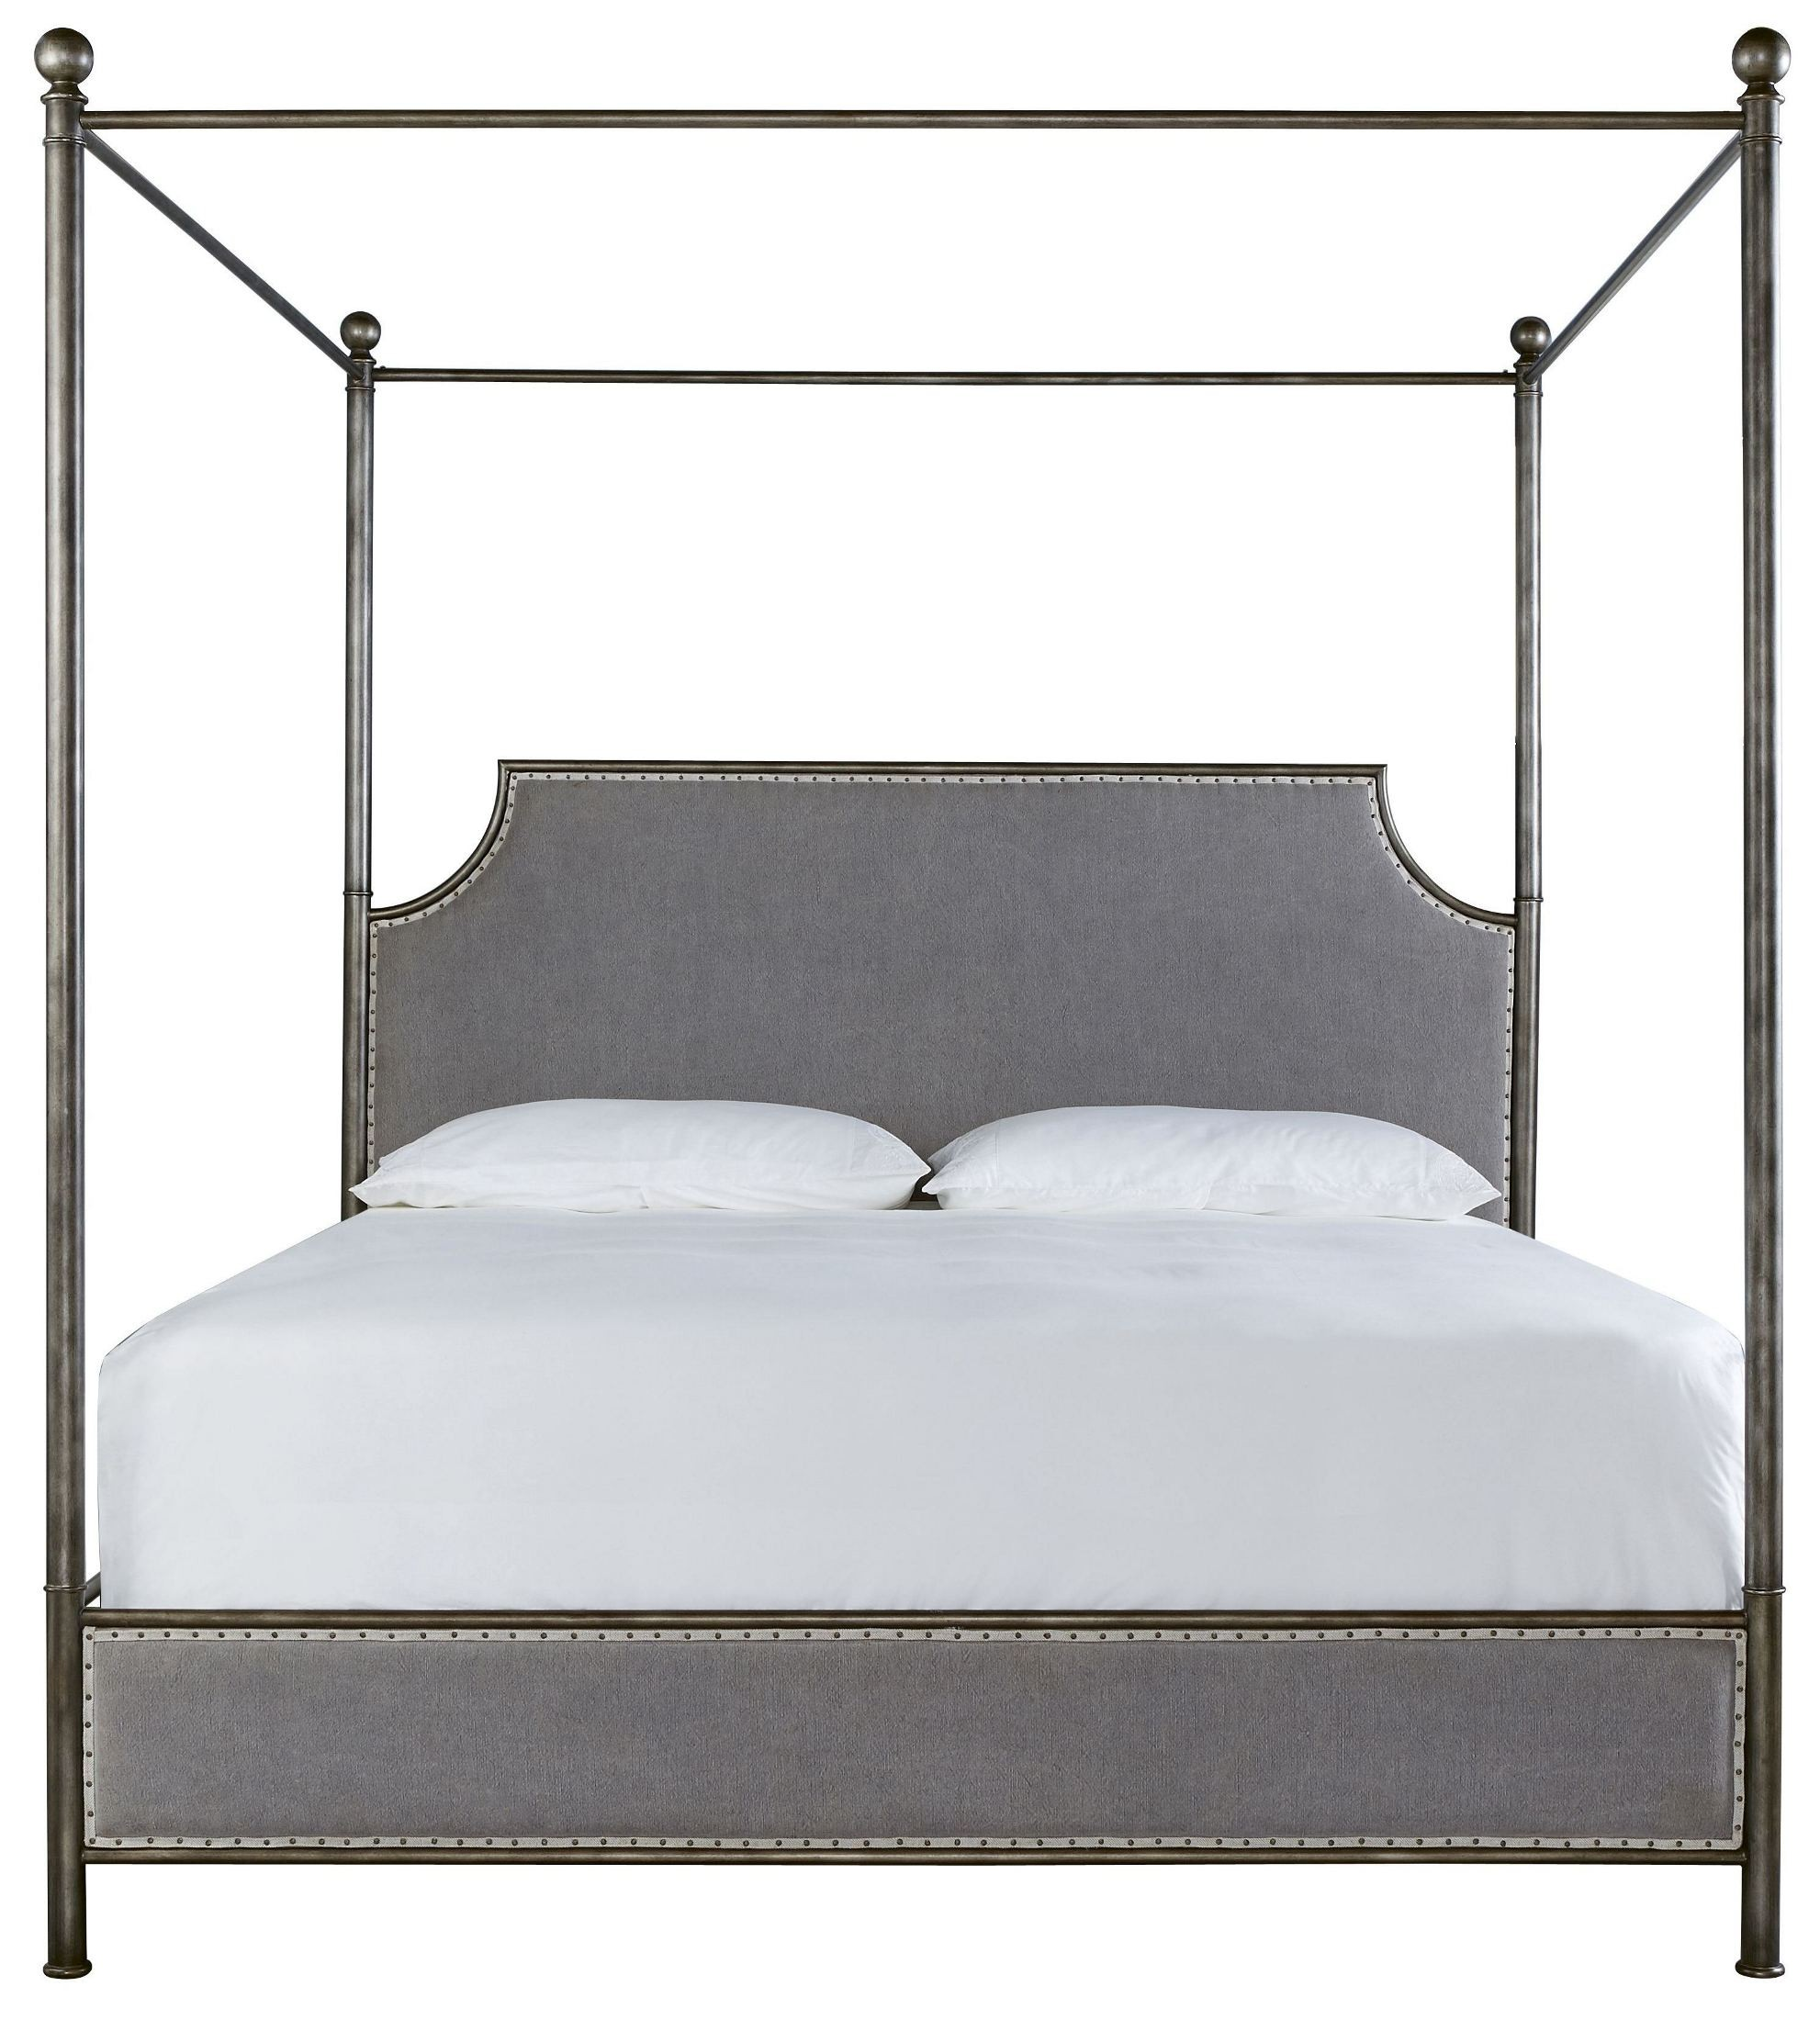 sojourn respite queen canopy bed 543b280b universal